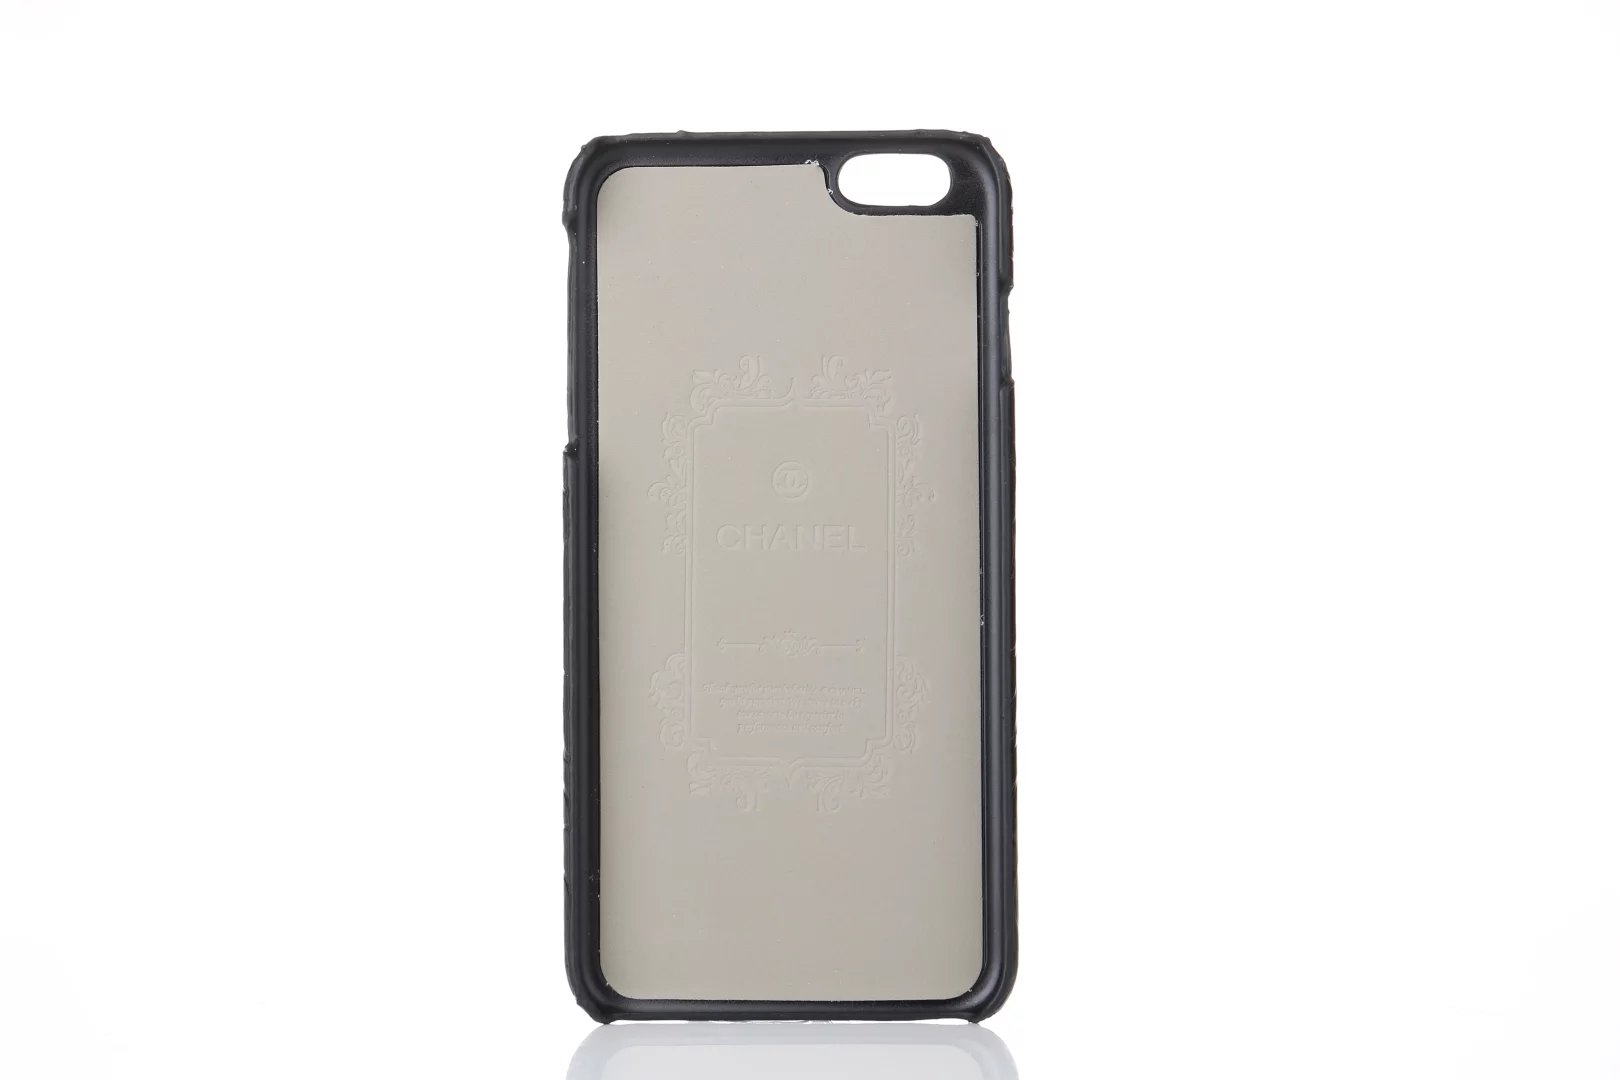 designer phone cases iphone 8 best iphone cases 8 Chanel iphone 8 case where to buy phone cases online create cell phone case iphone 8 case protector mobile phone cases and covers cover iphone apple iphone 8 cases and covers